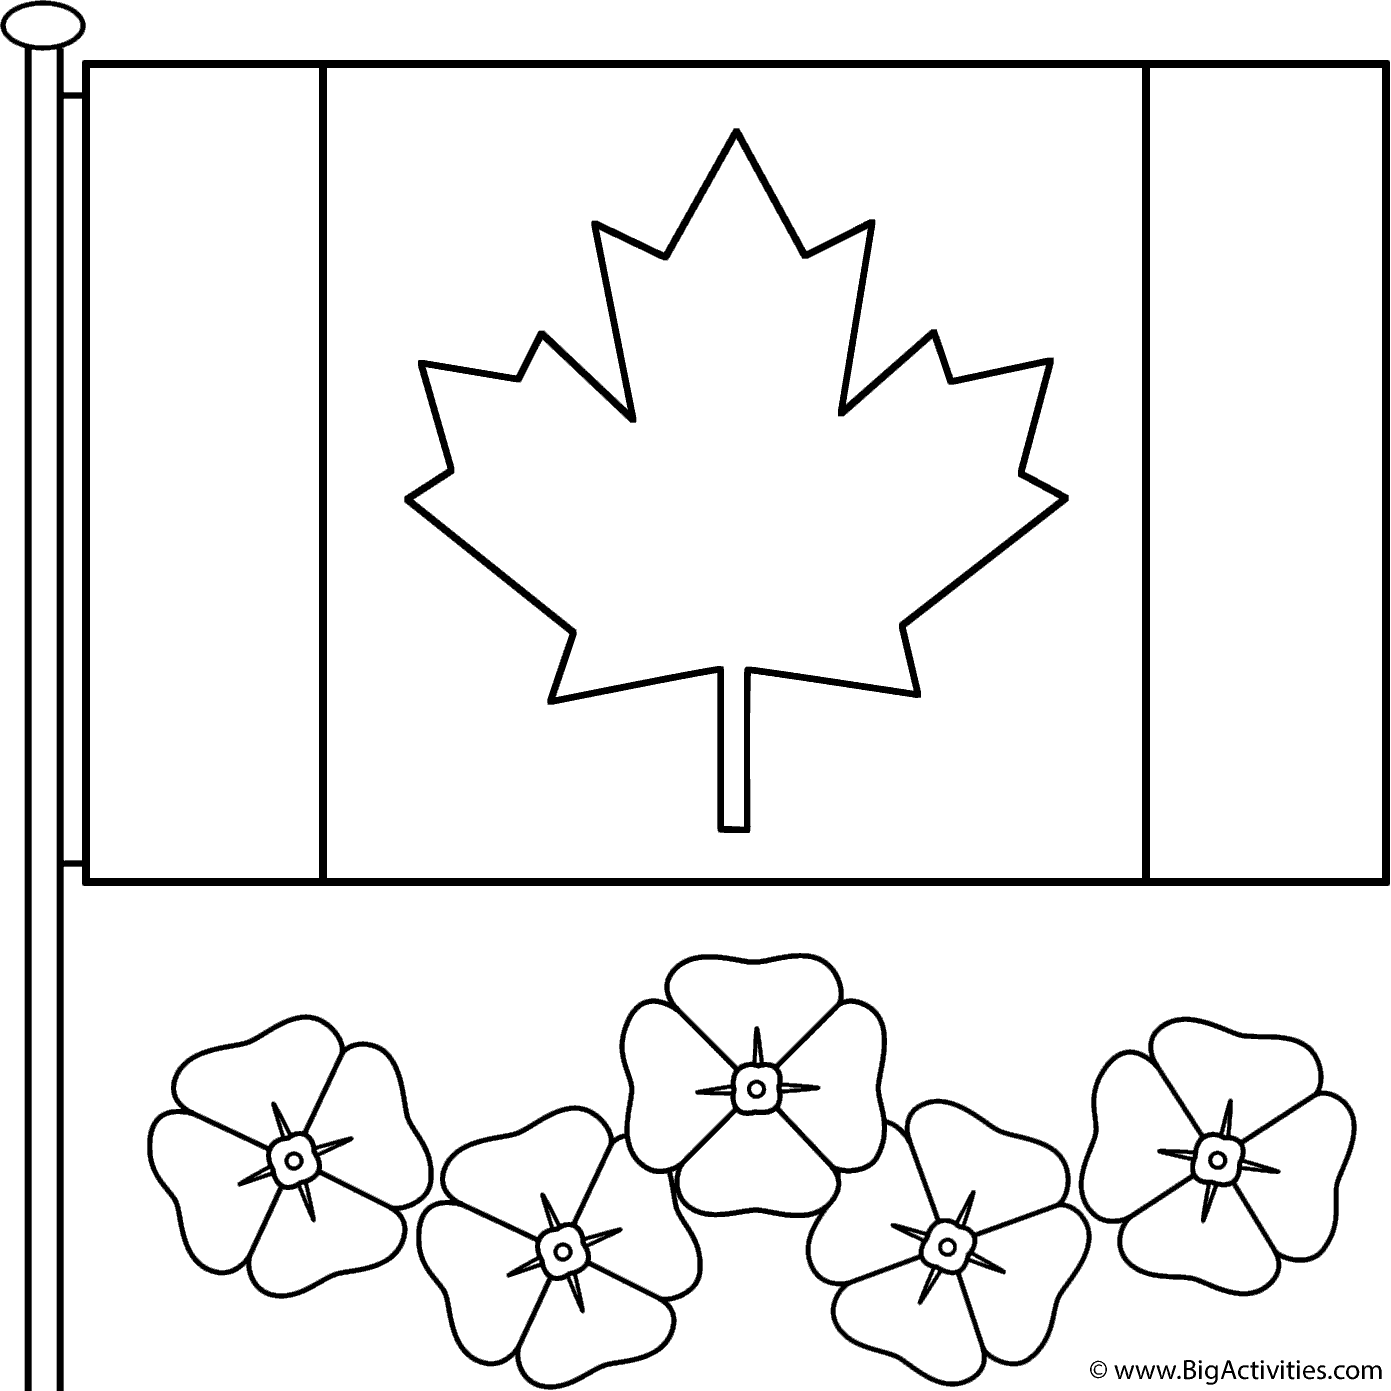 canadian flag coloring page - canadian flag with poppies coloring page remembrance day